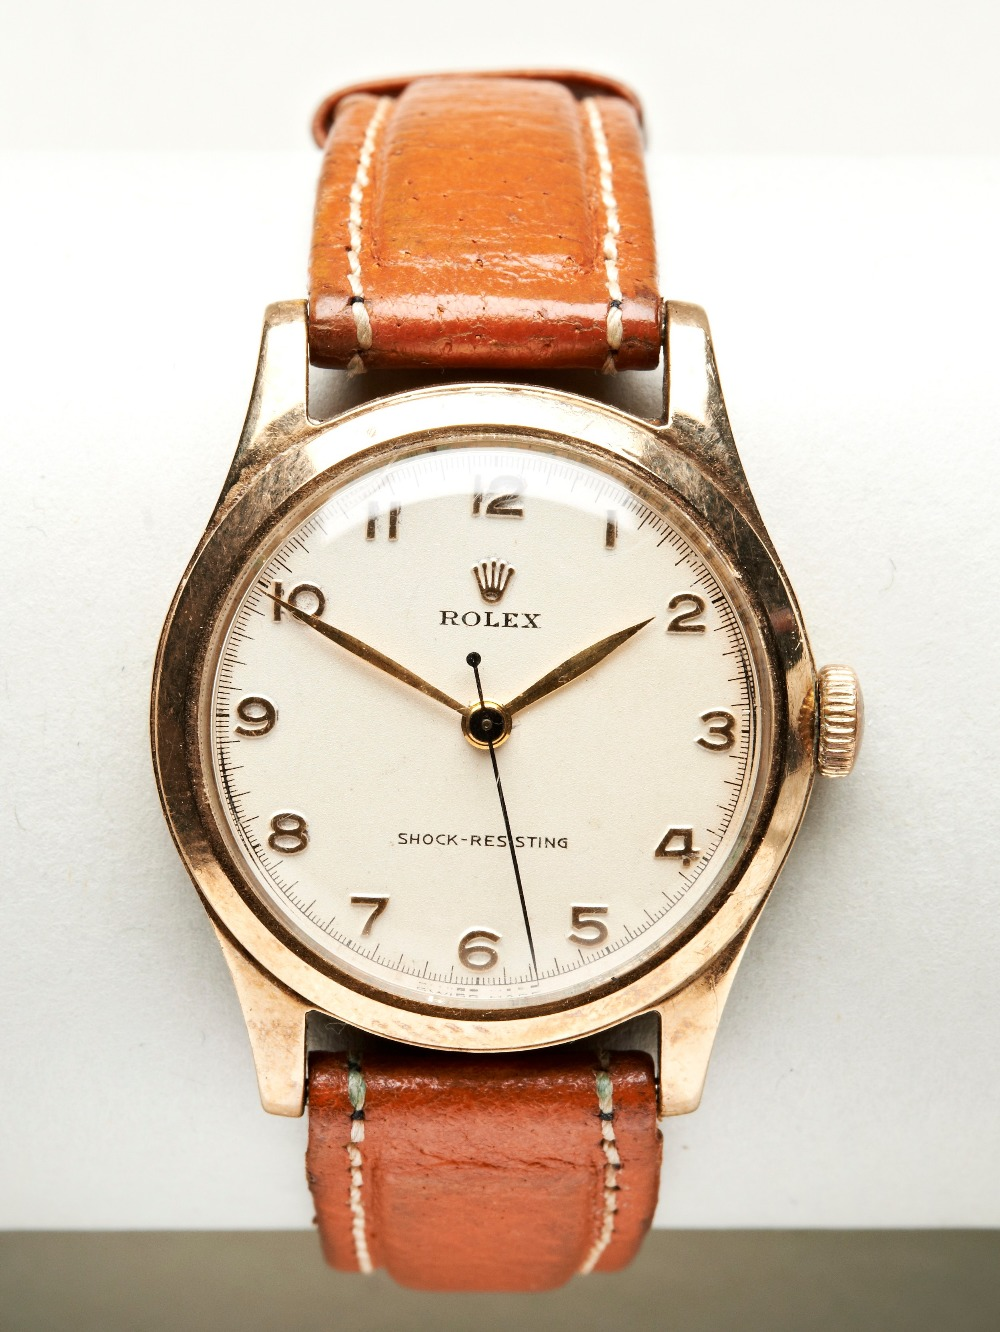 ROLEX 9CT GOLD PRECISION, manual wind with Arabic numerals and inscription verso for 1954, Sidney - Image 2 of 4